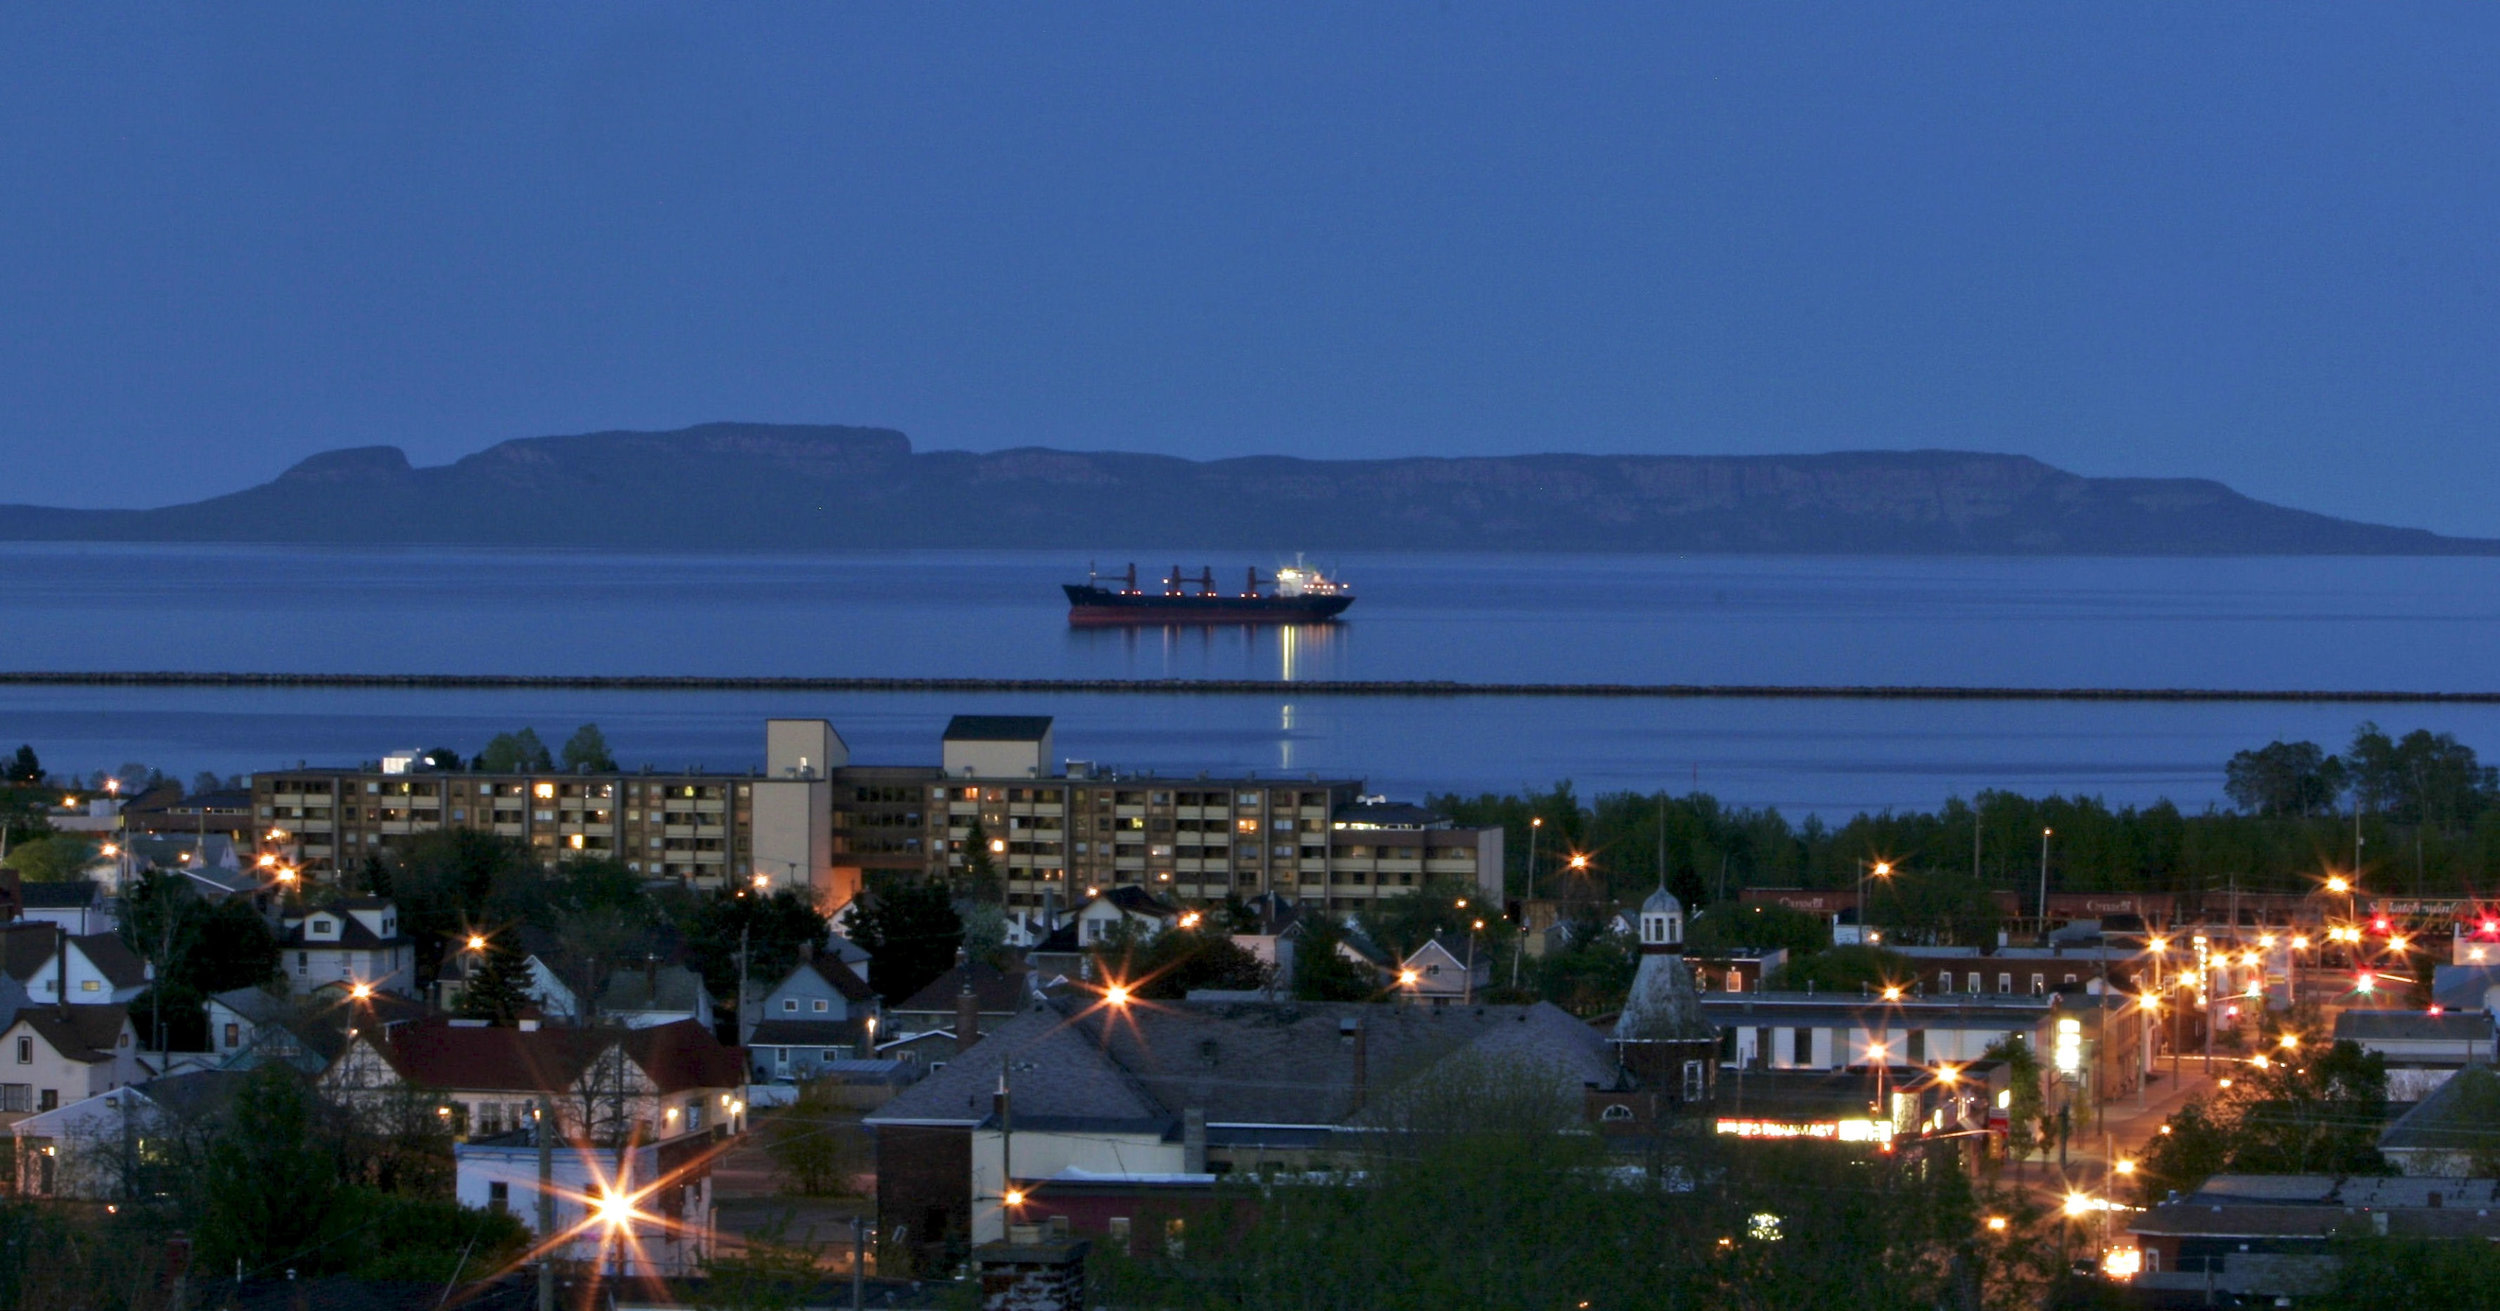 An evening view of our neighborhood in Thunder Bay and the Sleeping Giant.